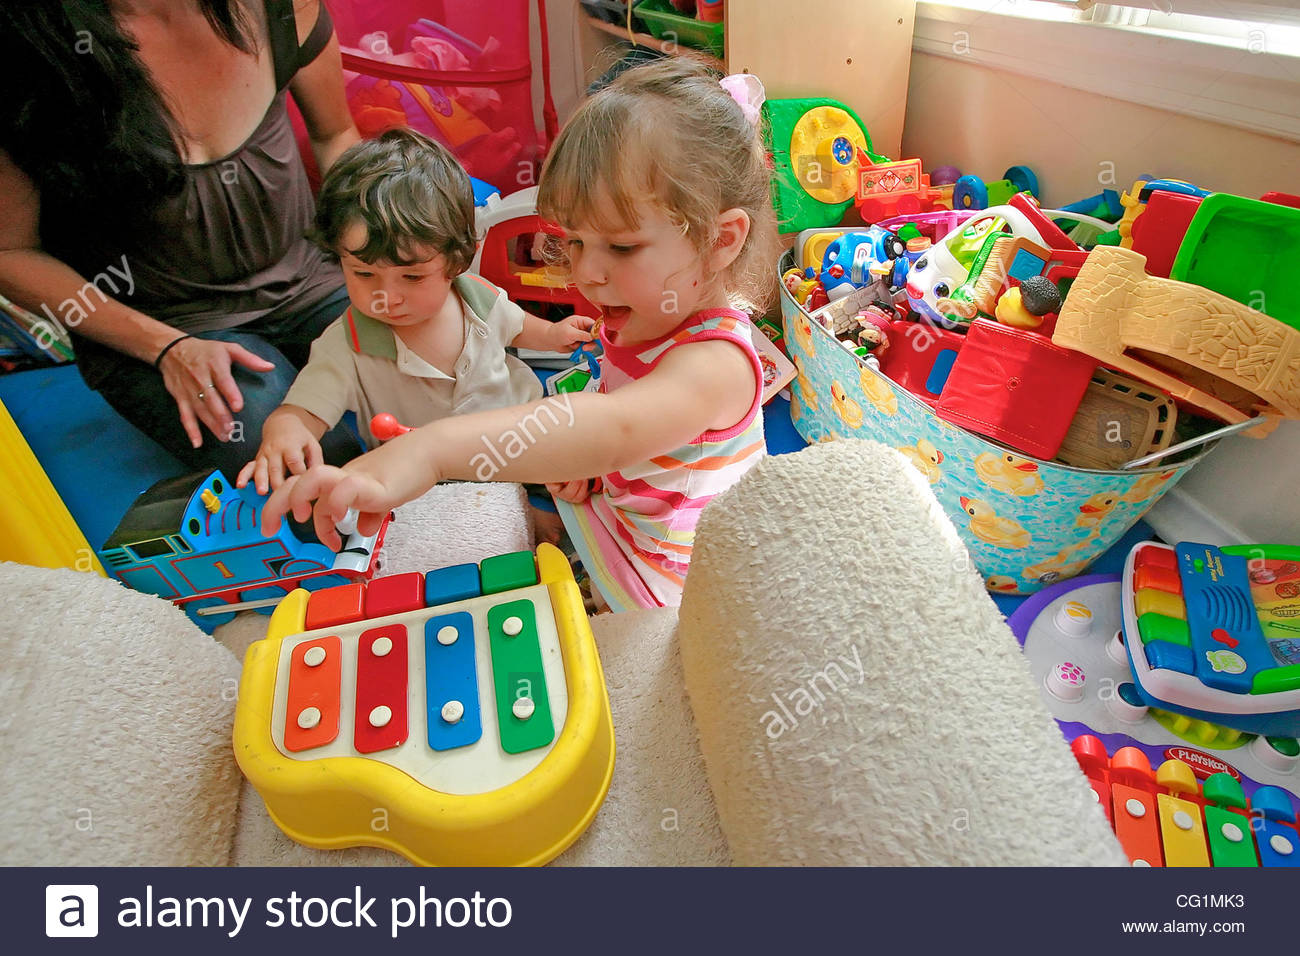 Dana Laine Parker of Westchester, CA, watches her 13-month-old son Toby and 2 1/2-year-0ld Ivy play with their toys - Stock Image